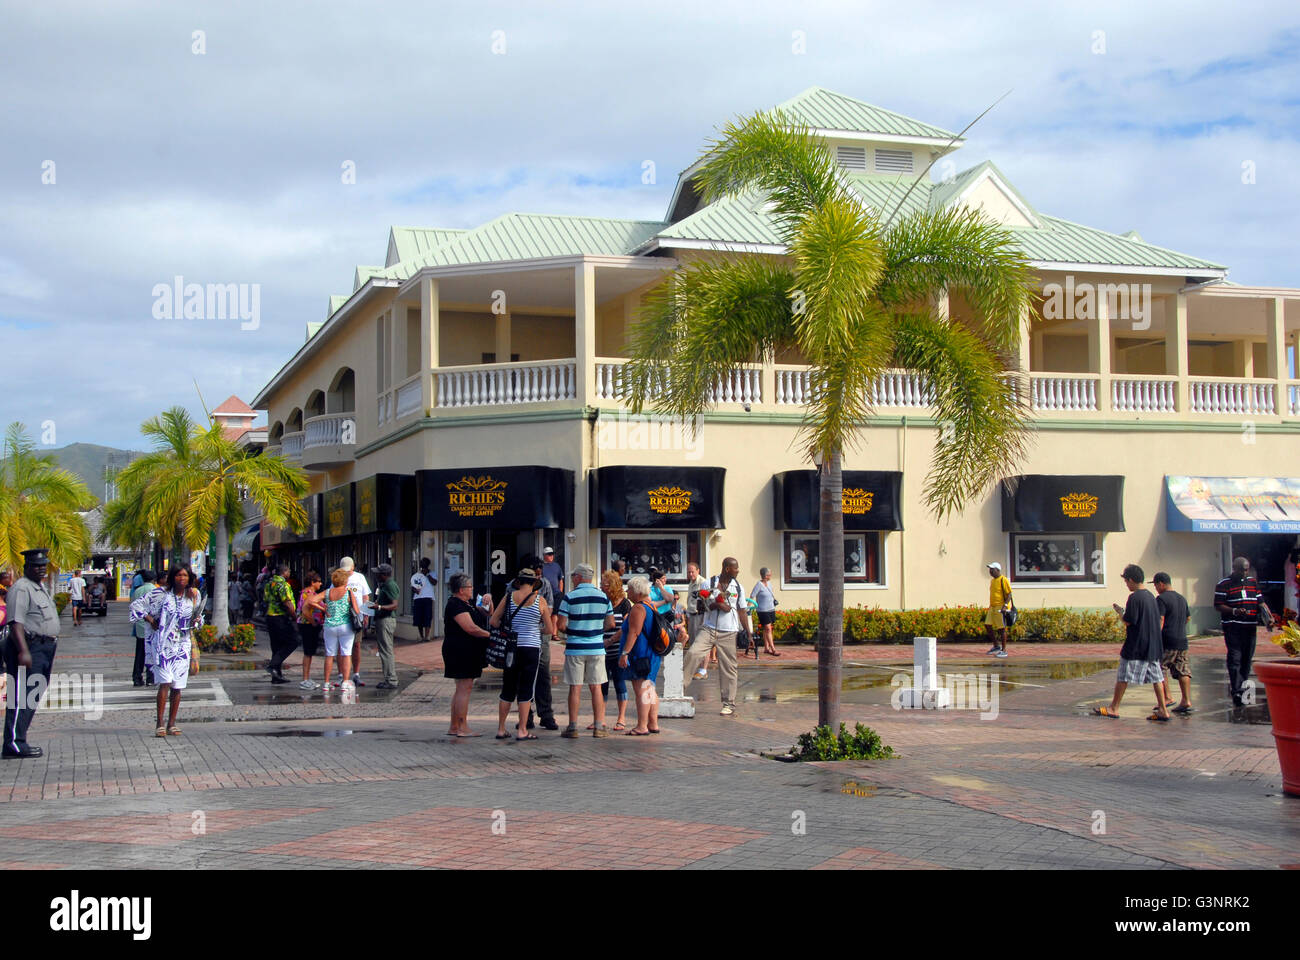 Shopping area port zante st kitts stock photo royalty free image 105585734 alamy for Port zante st kitts